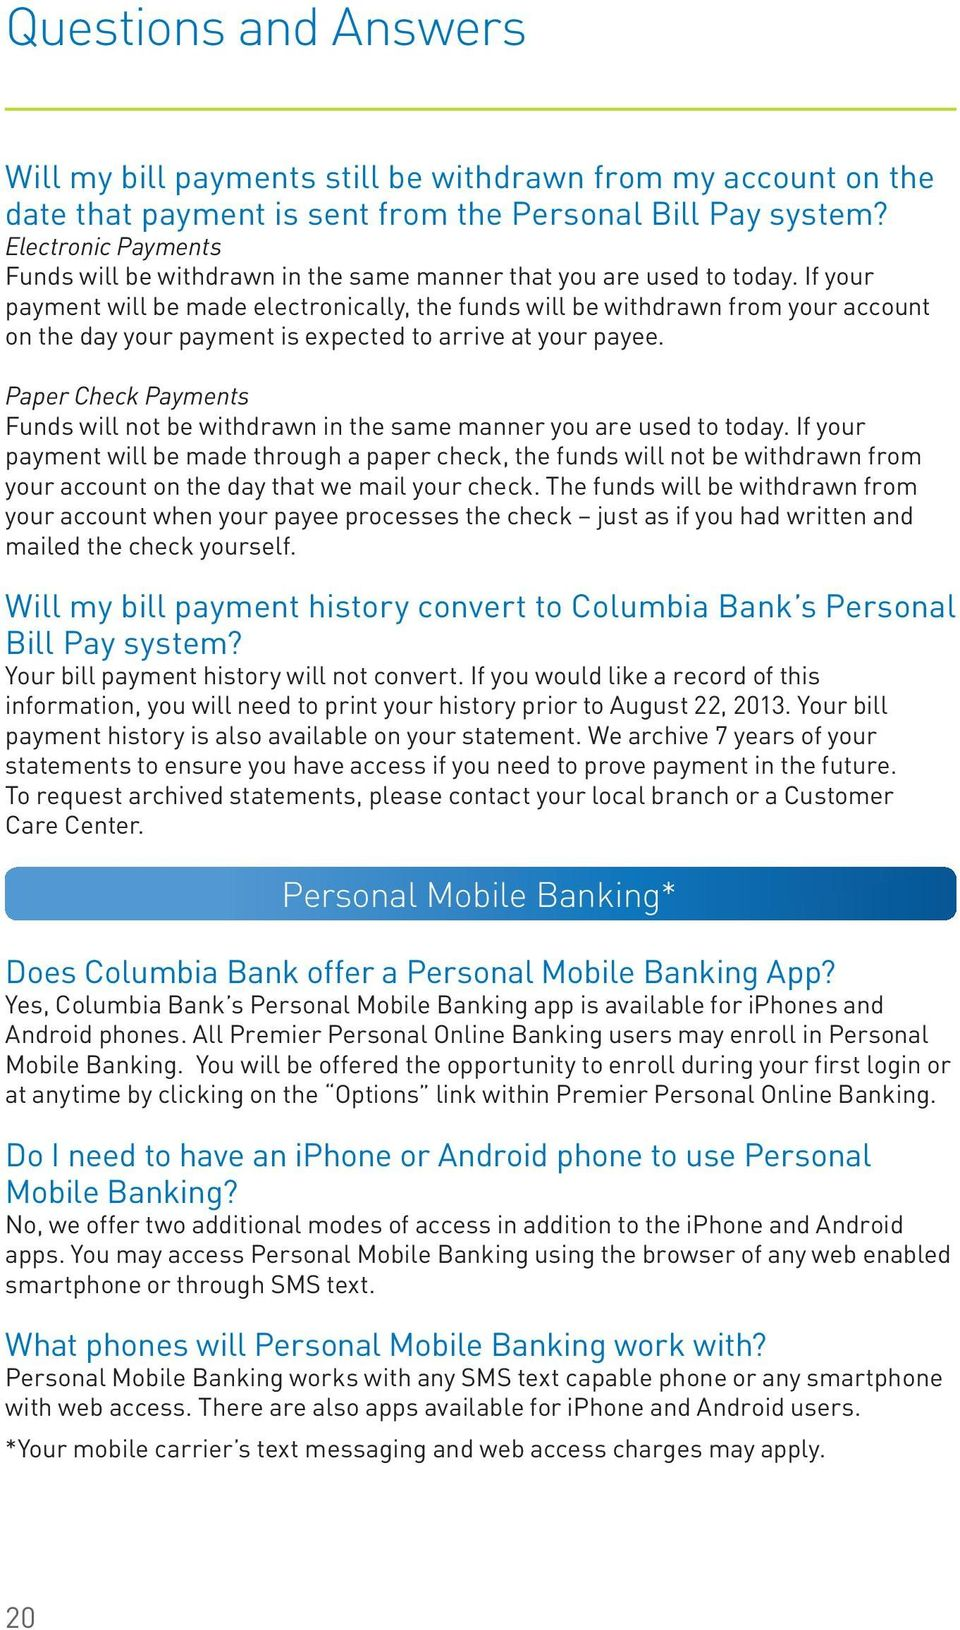 first columbia bank online banking